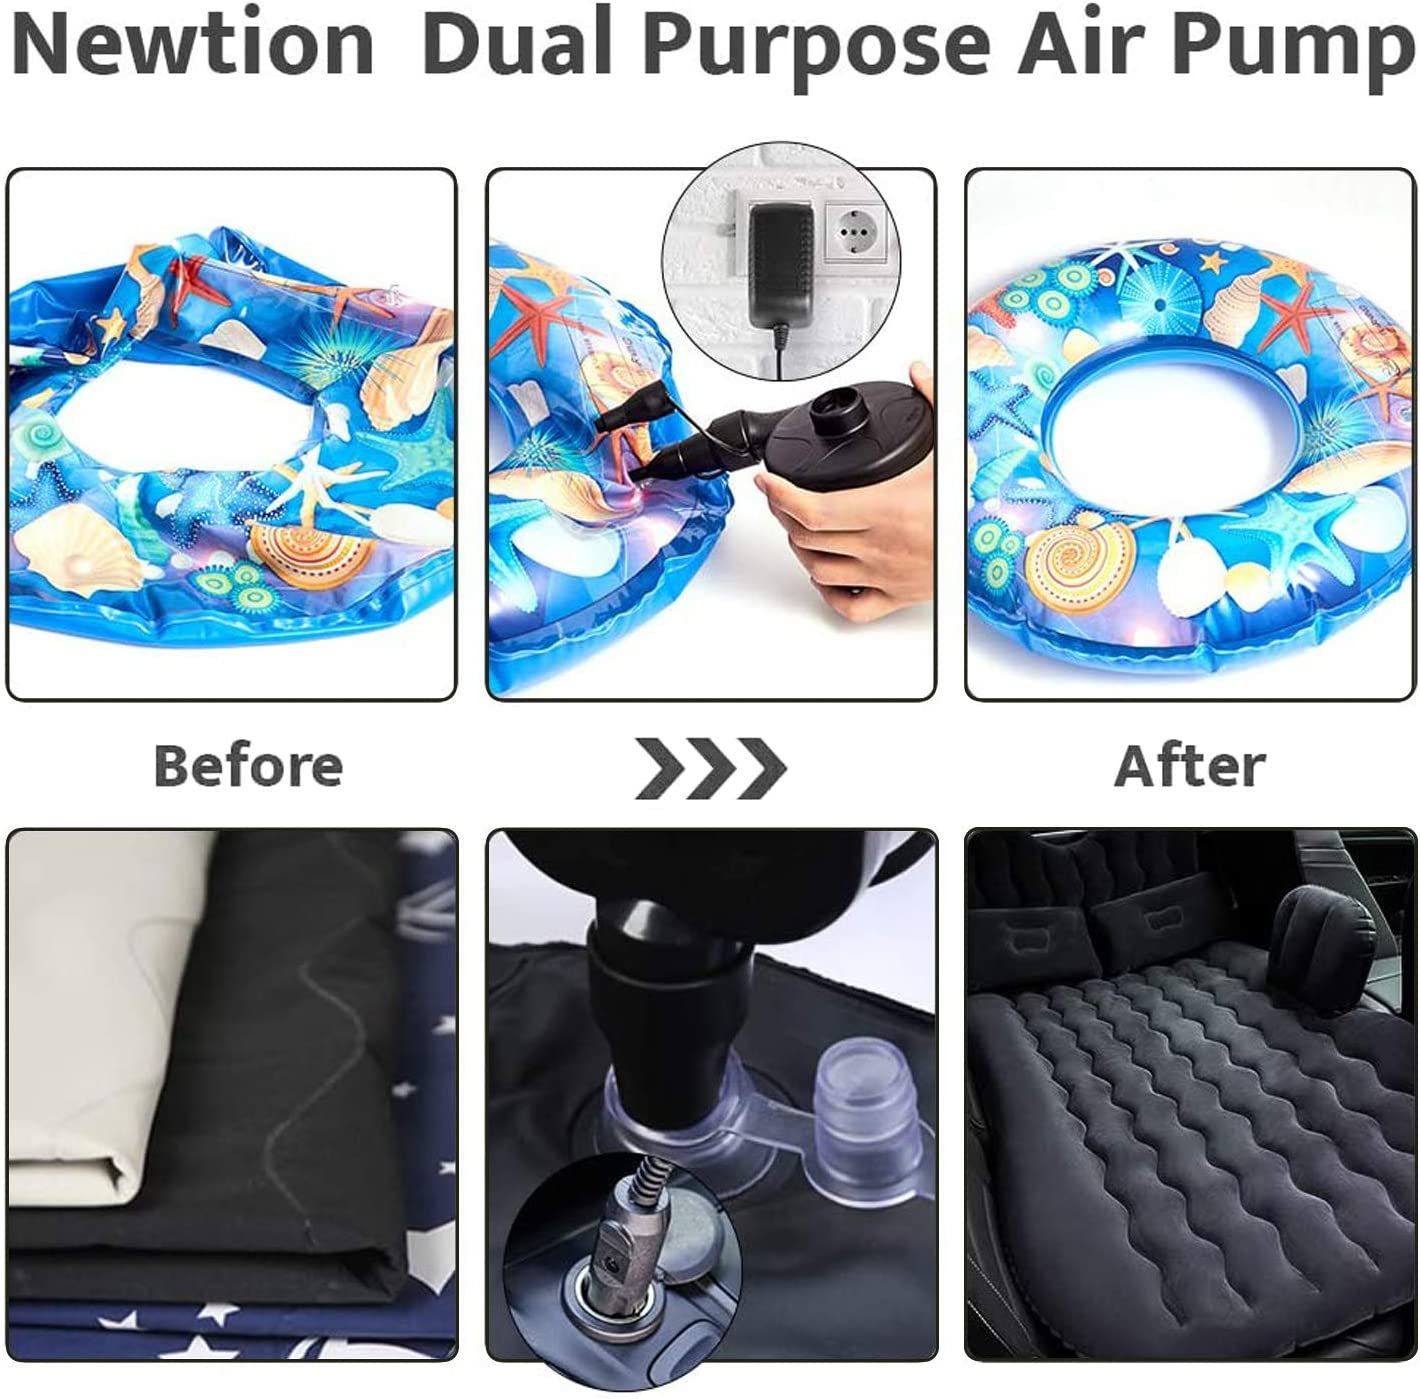 Pool Floats Pool Raft Toy DOTSOG Electric Air Pump,100-240V AC Electric Pool Float Pump,Portable Inflate and Deflate Air Pump with 3 Nozzles Inflatable Pump Air Mattress Pump for Inflatables Couch